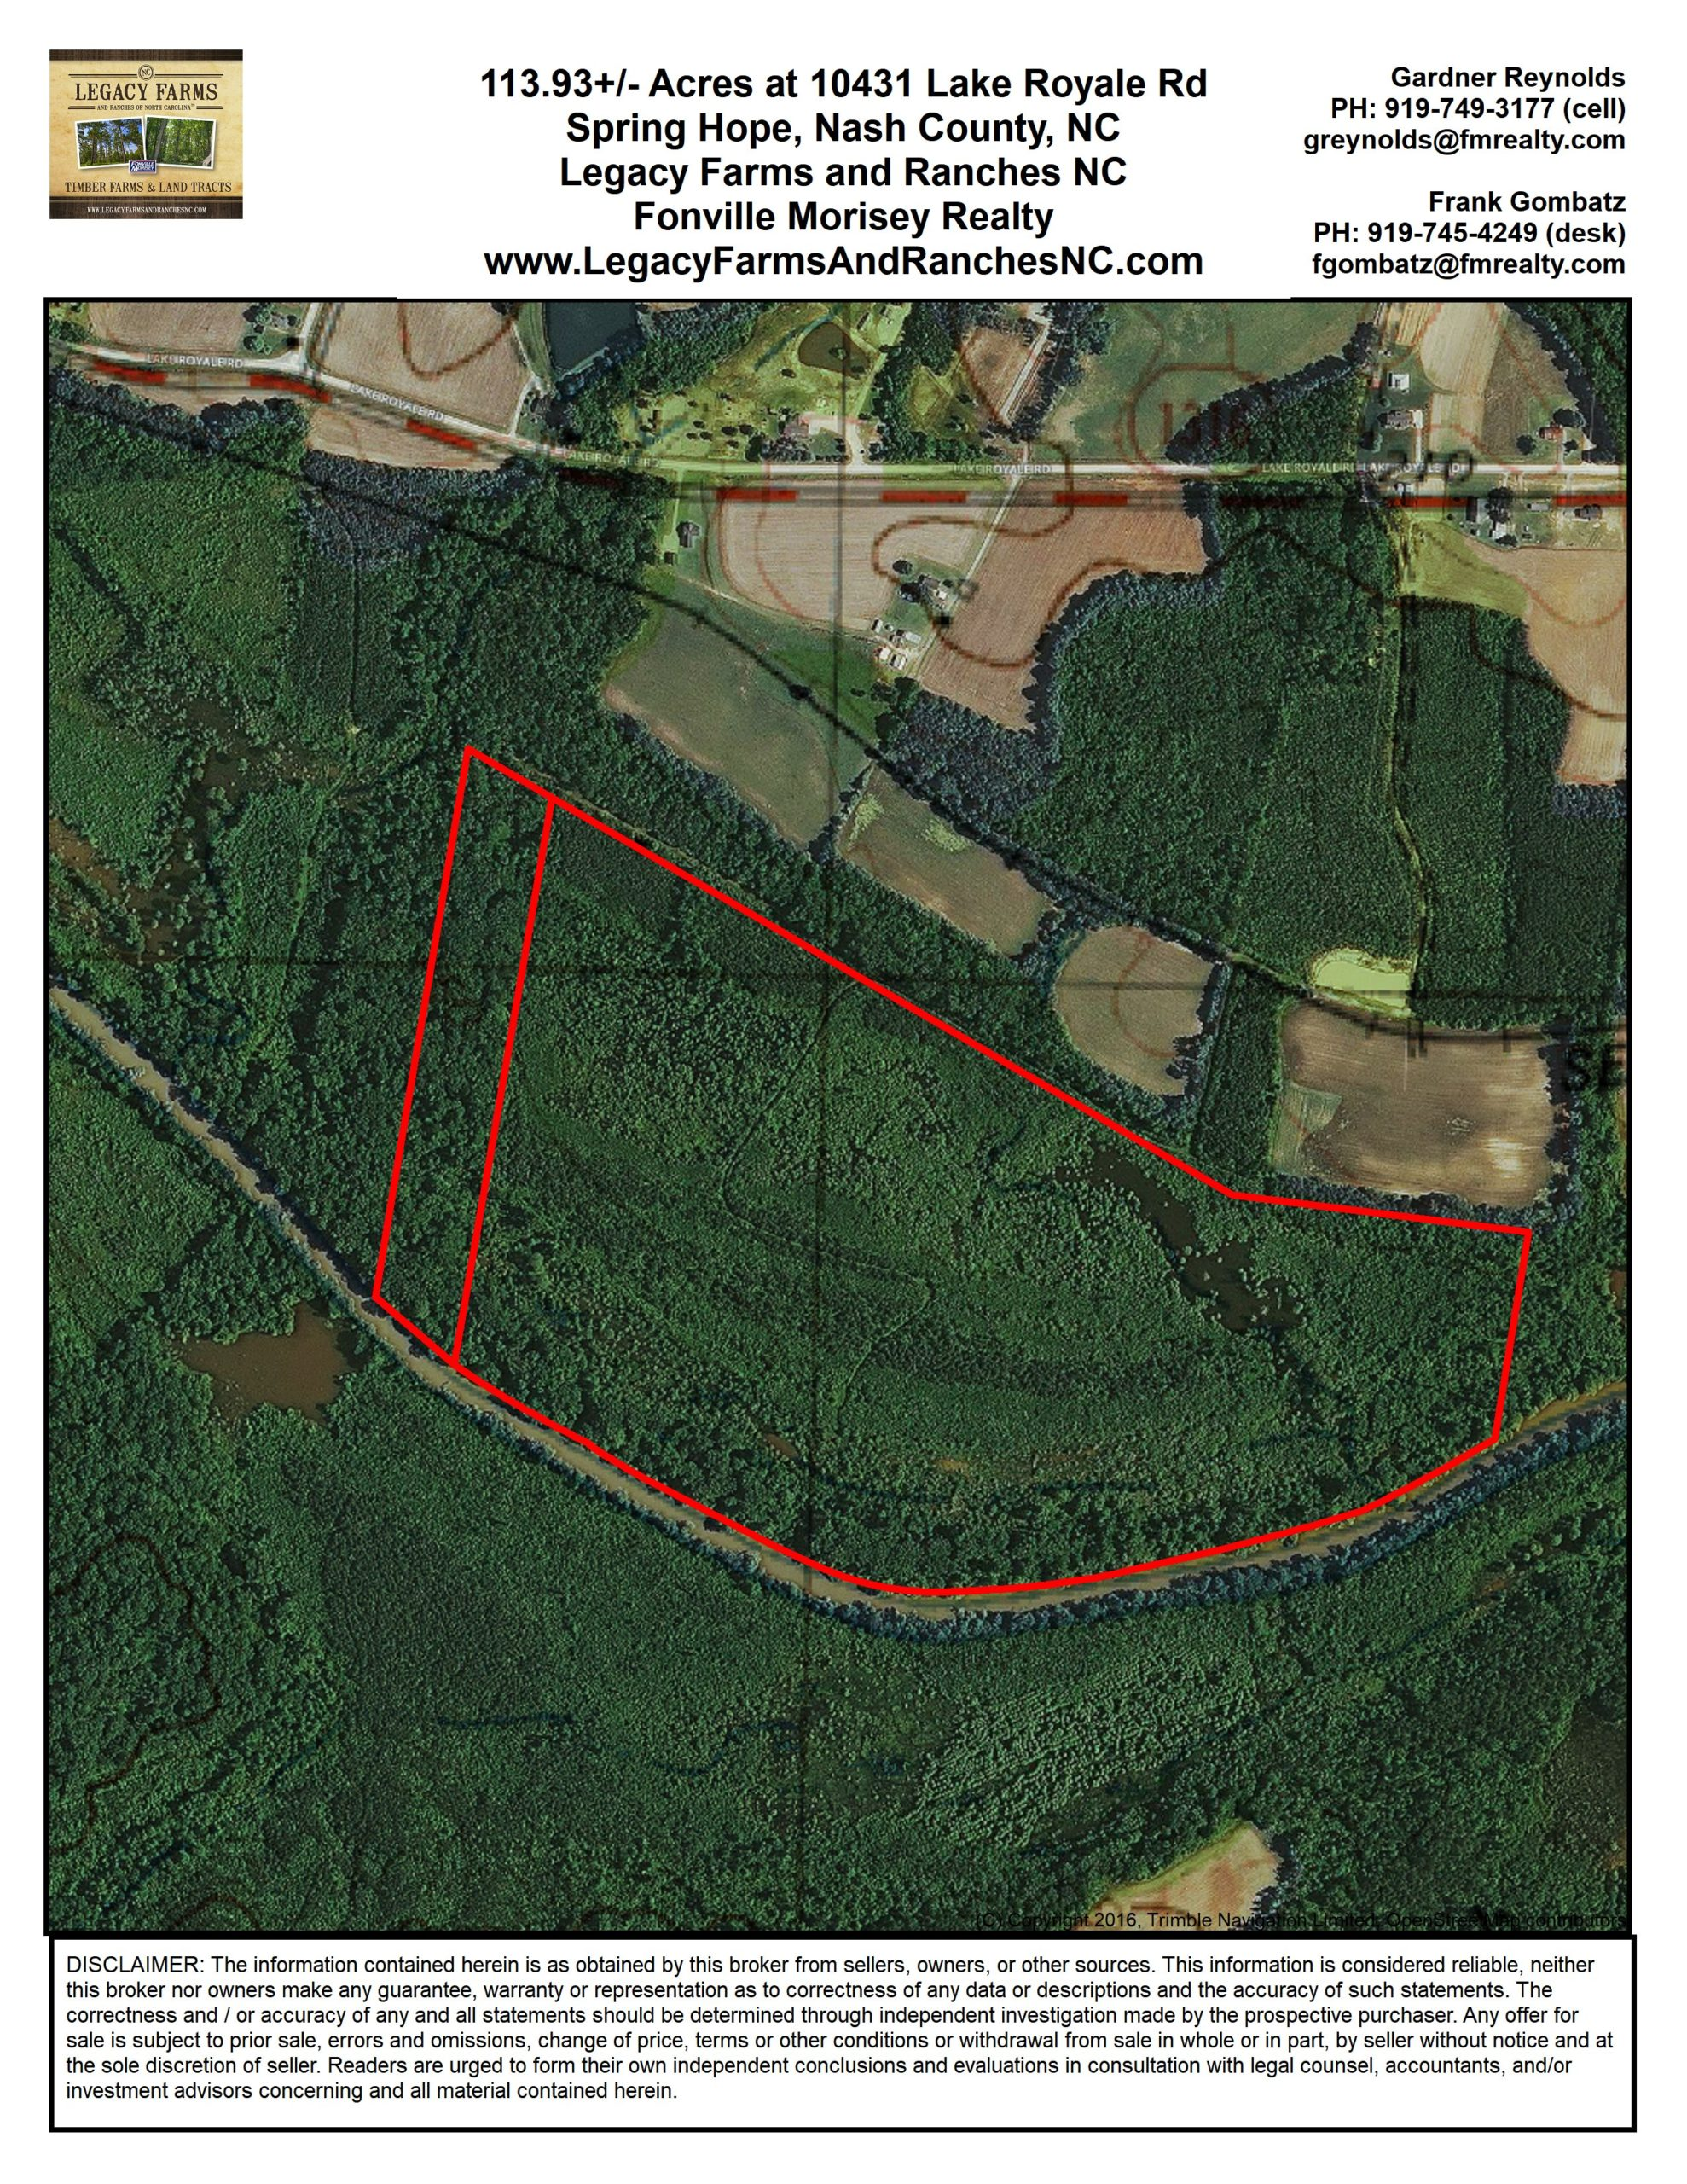 Selling NC Duck Impoundments